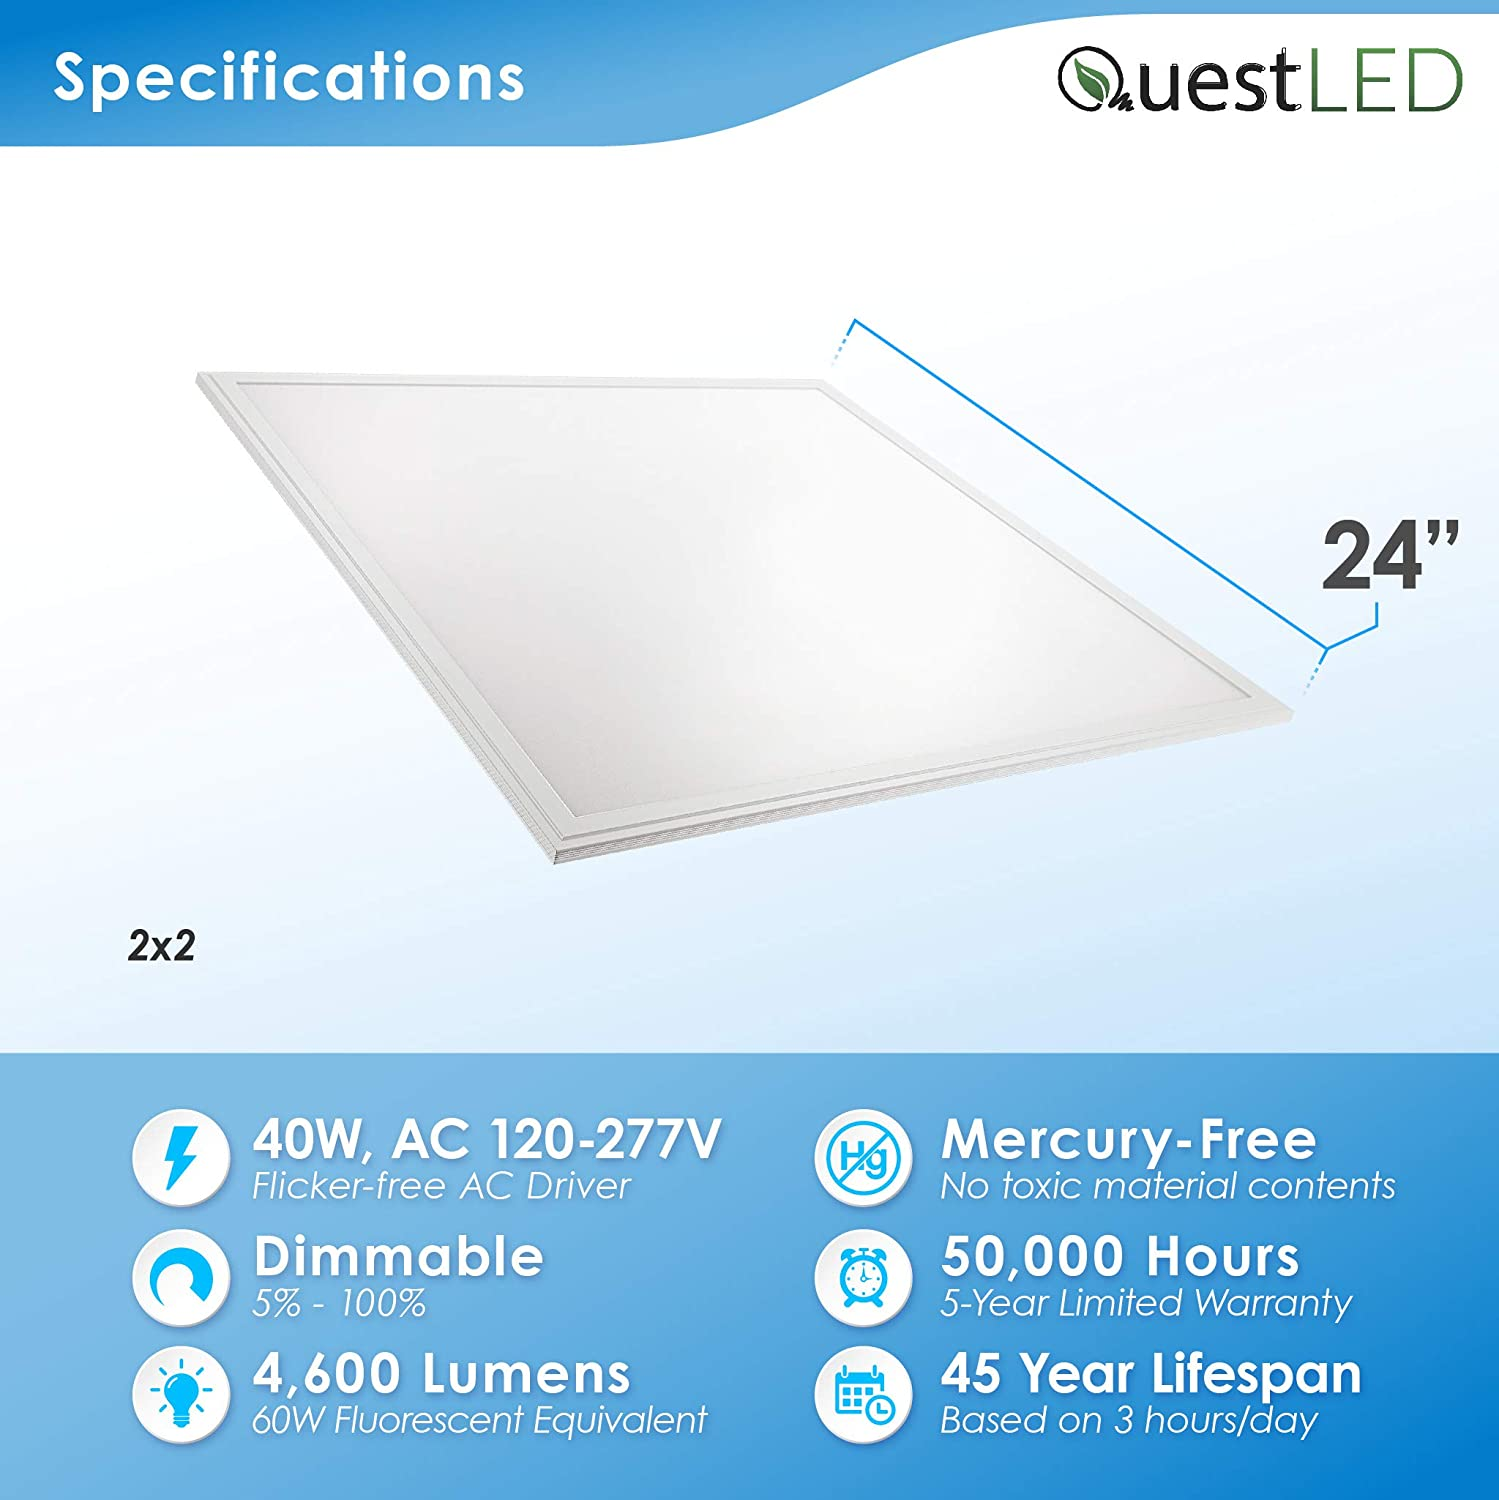 Amazon.com: 2x2 LED Flat Panel Light Ultra Thin Commercial and Residential Drop Ceiling Fixture Edge-Lit Dimmable 40W, 3500K, 120V-277V, 4600 Lumnes, ...